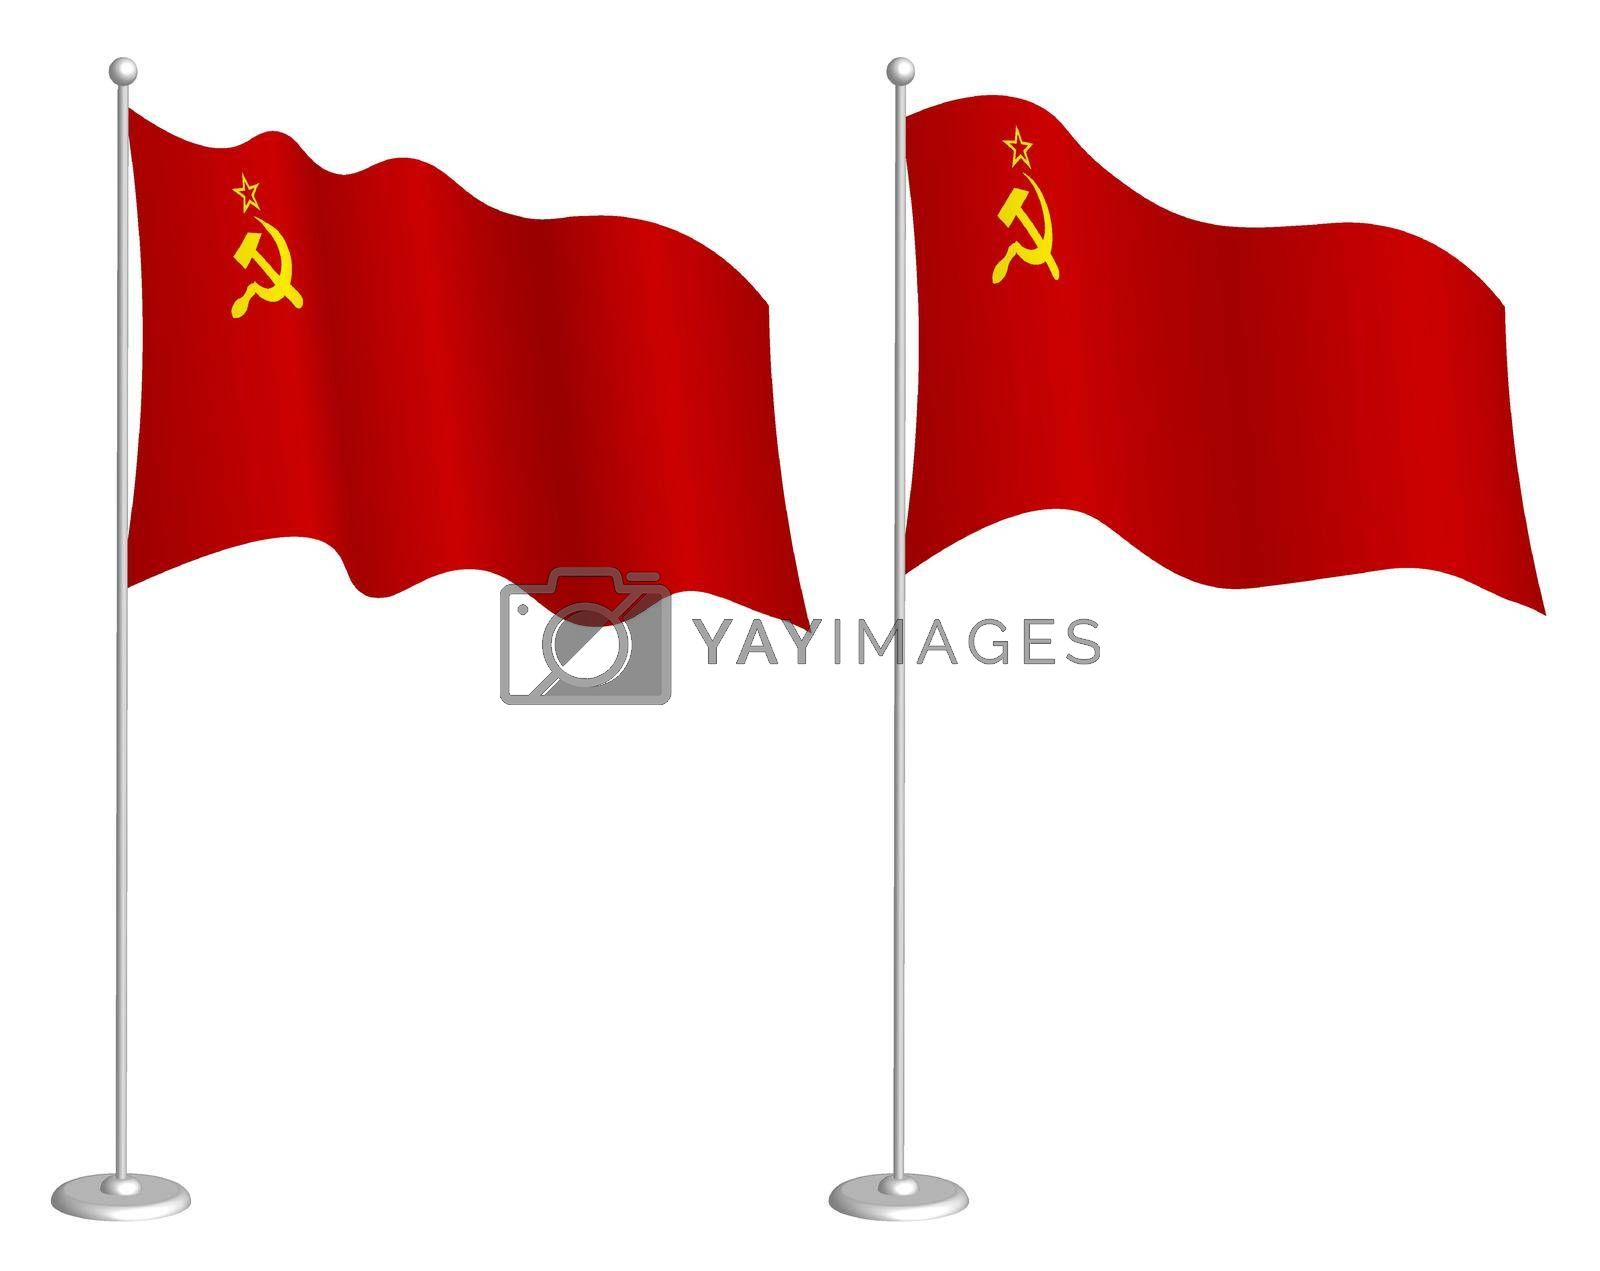 Soviet Union flag, USSR on flagpole waving in wind. Holiday design element. Checkpoint for map symbols. Isolated vector on white background